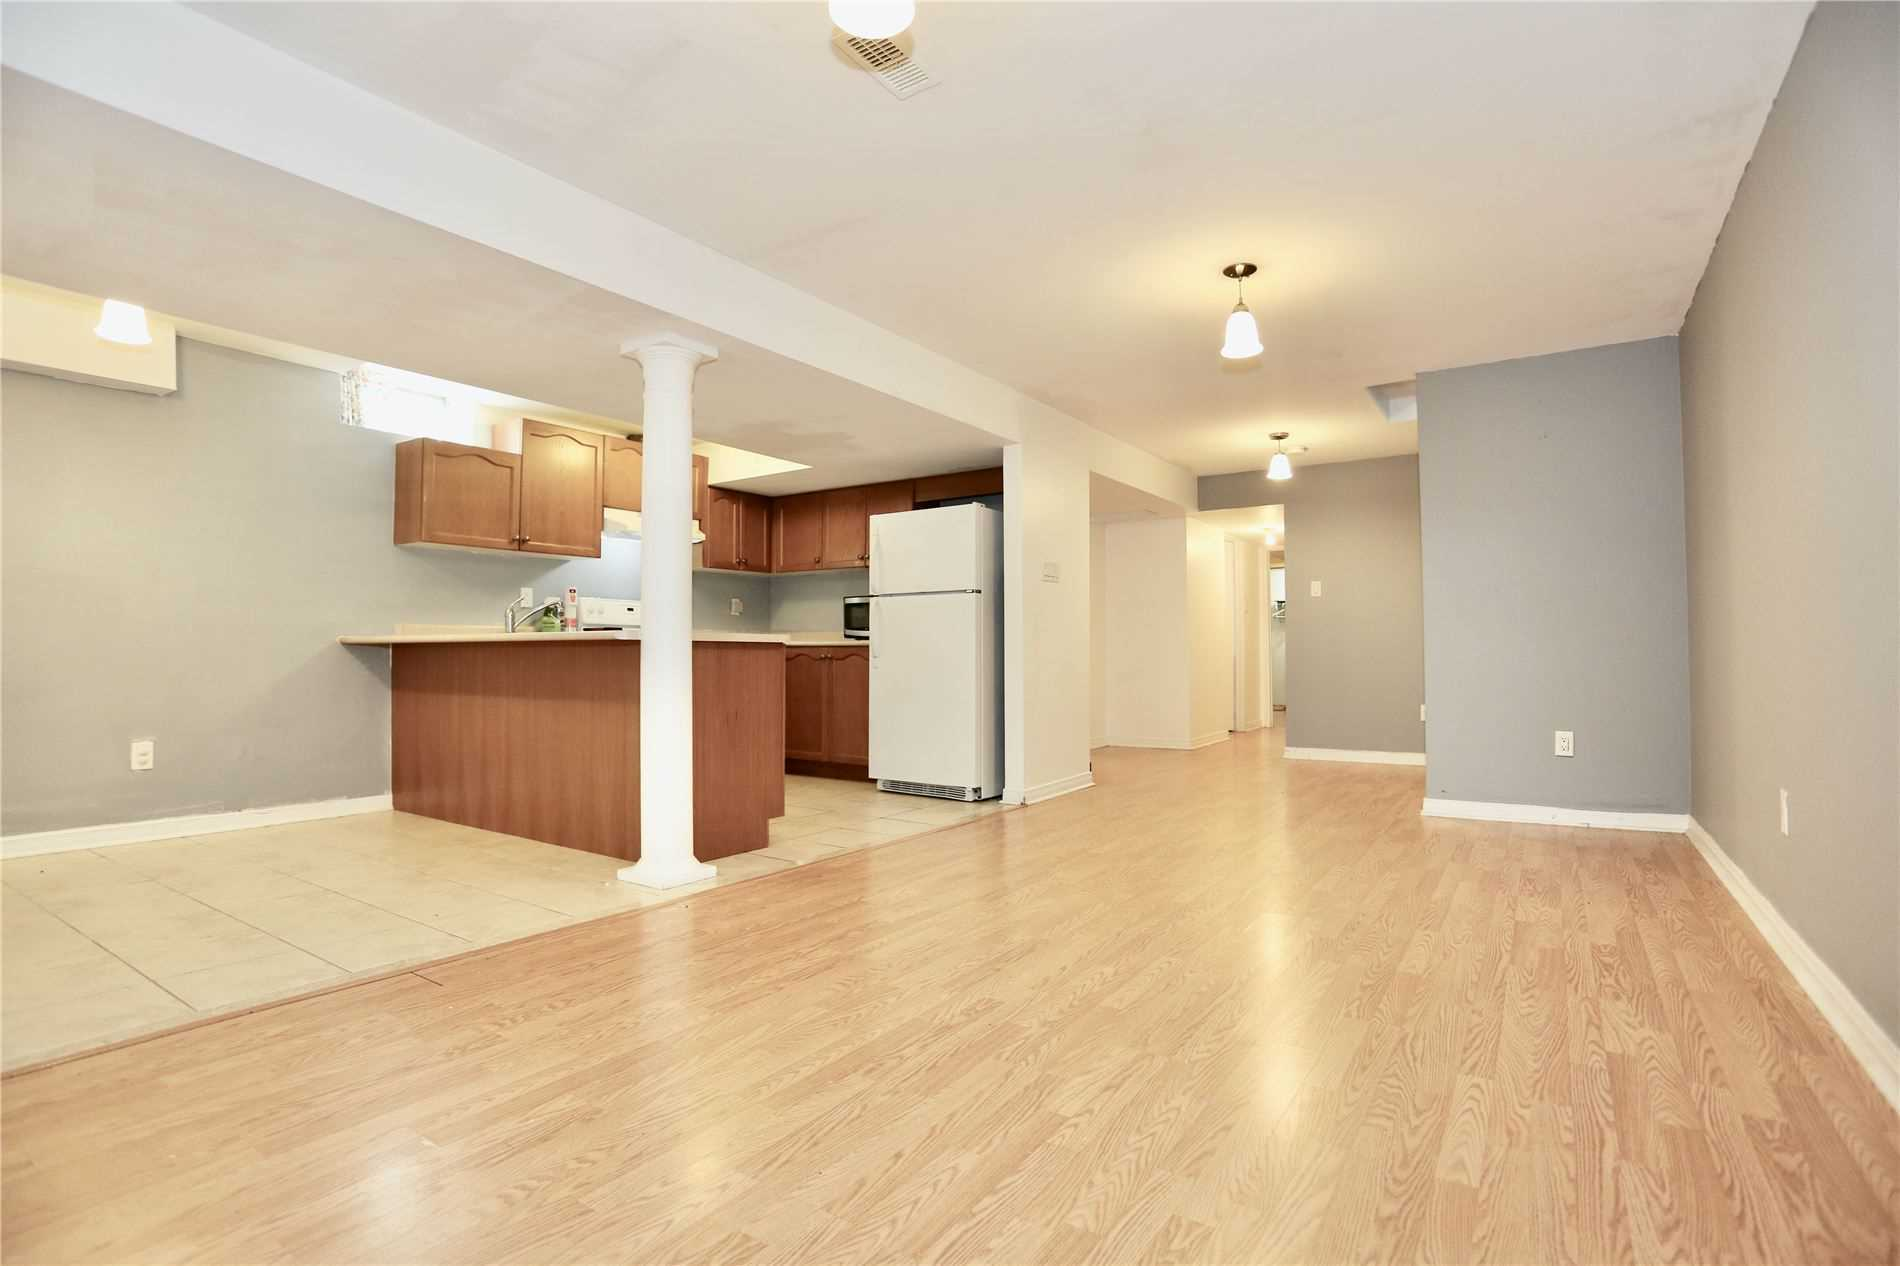 Apartment in Halton